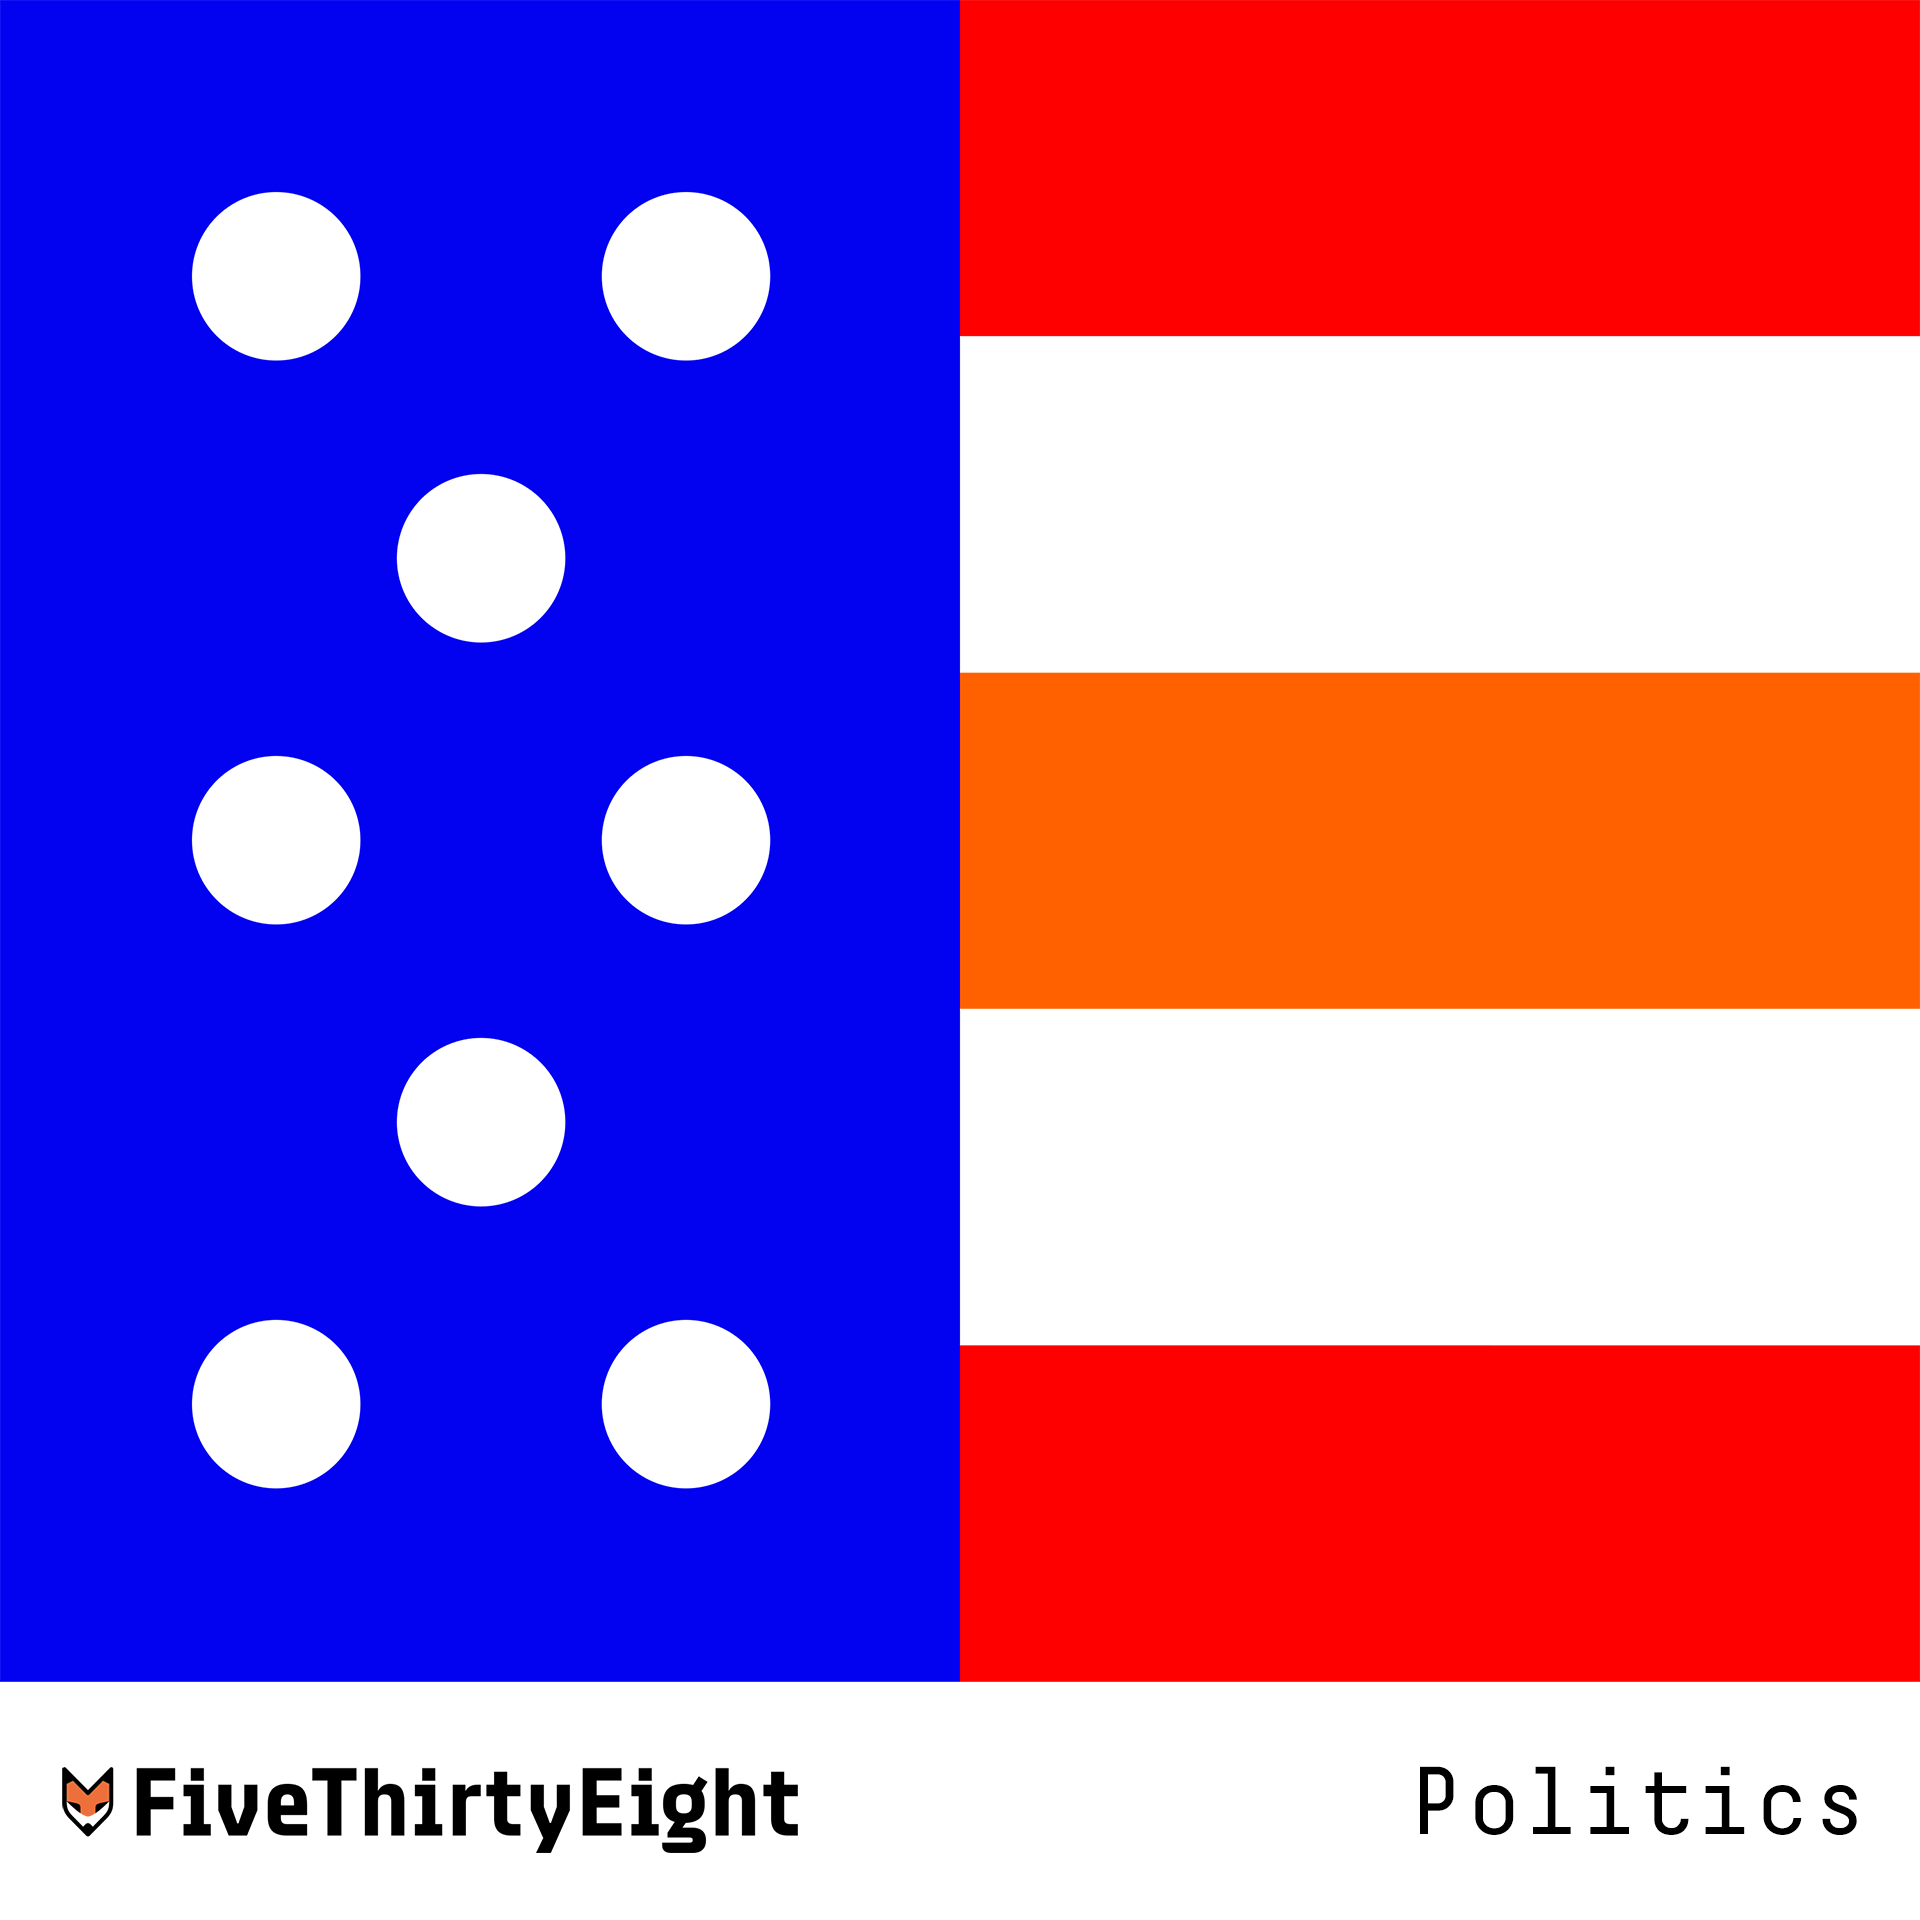 FiveThirtyEight Elections